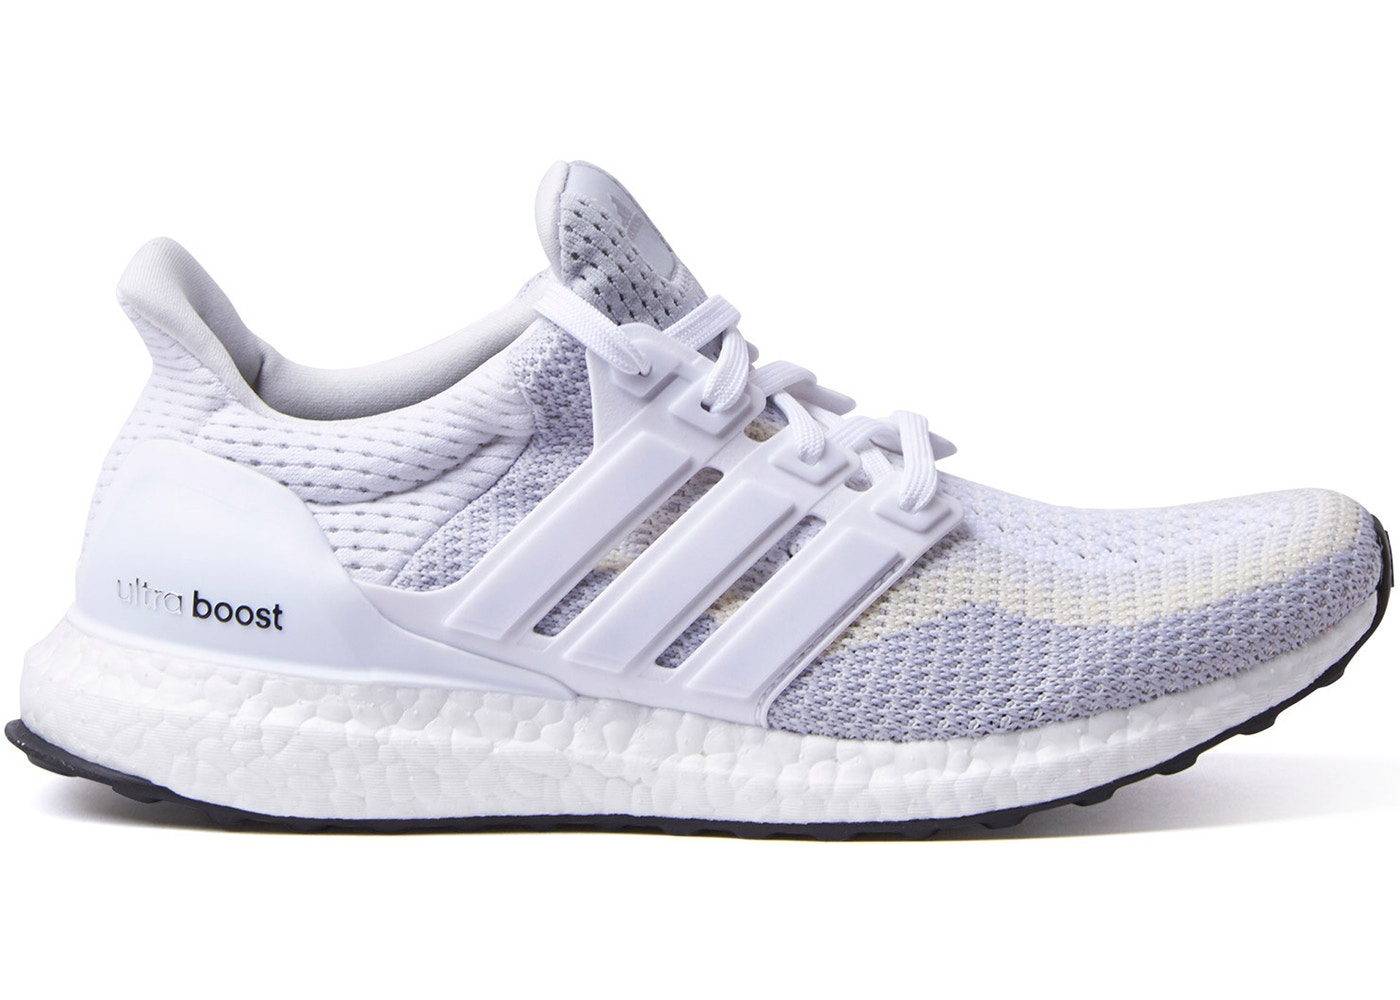 detailed look 12982 fef58 adidas Ultra Boost 2.0 Shoes - Release Date